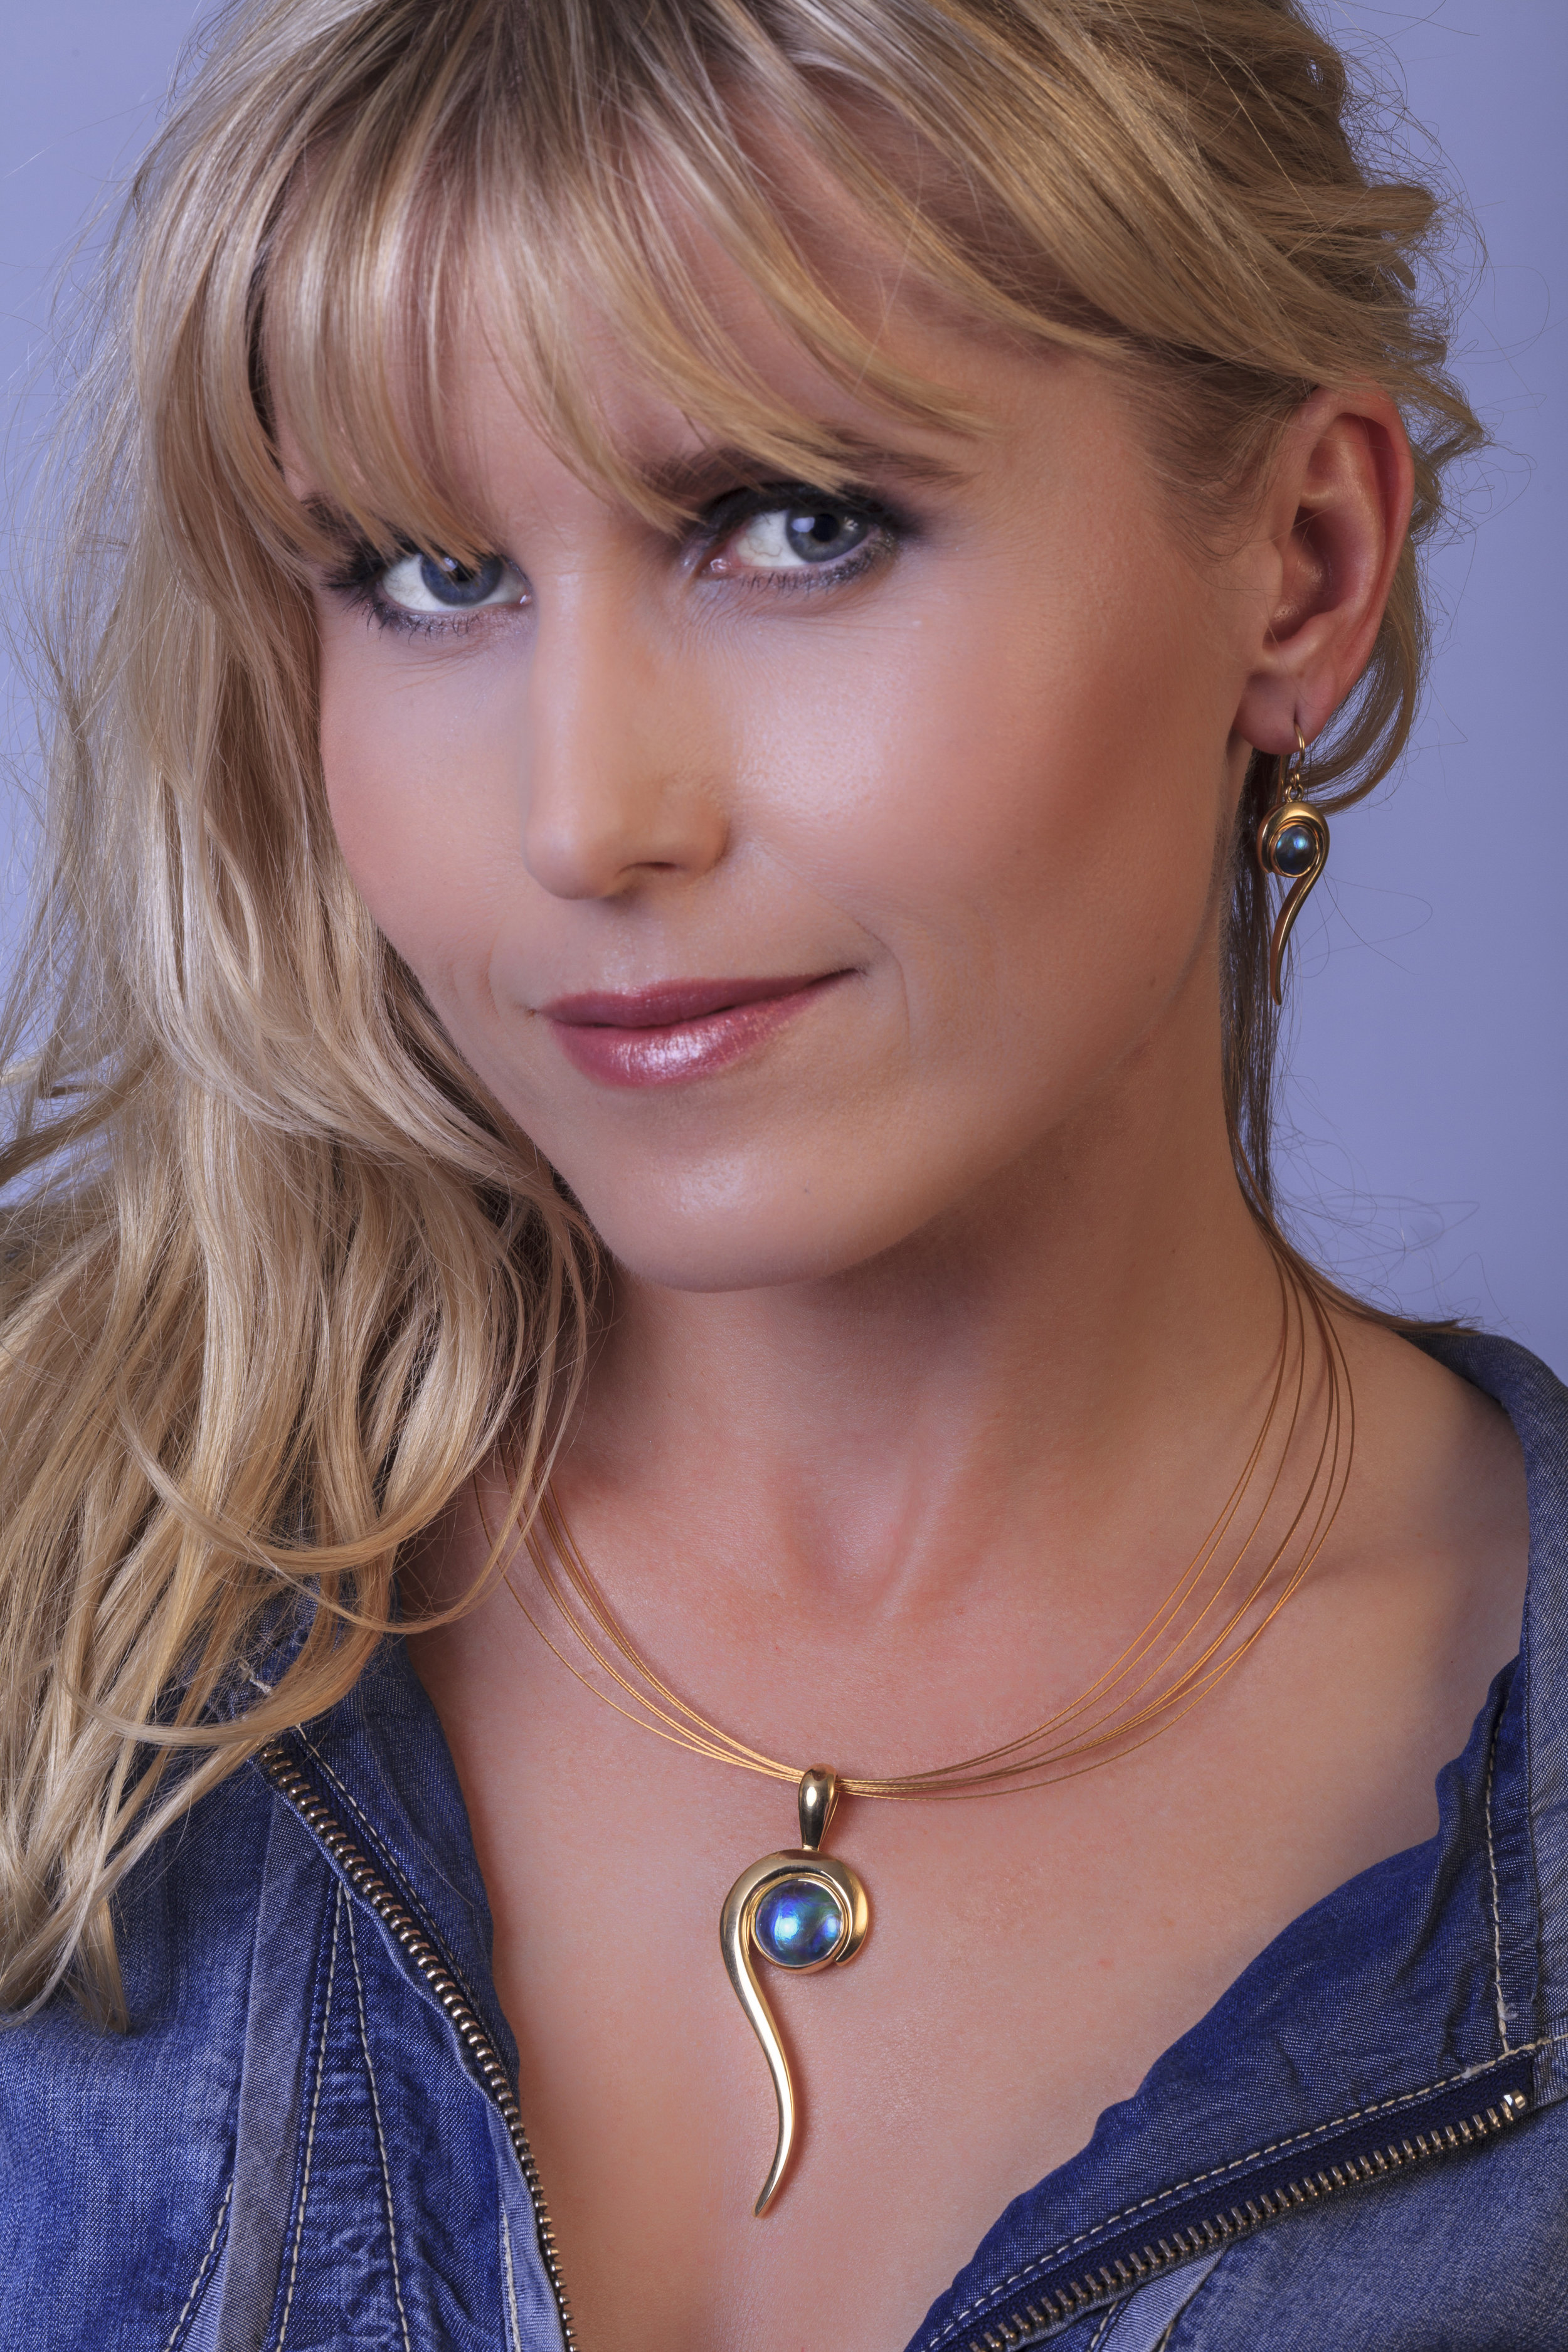 Sea Tail Pendant by Blue Pearl Gallery with Eyris Pearl